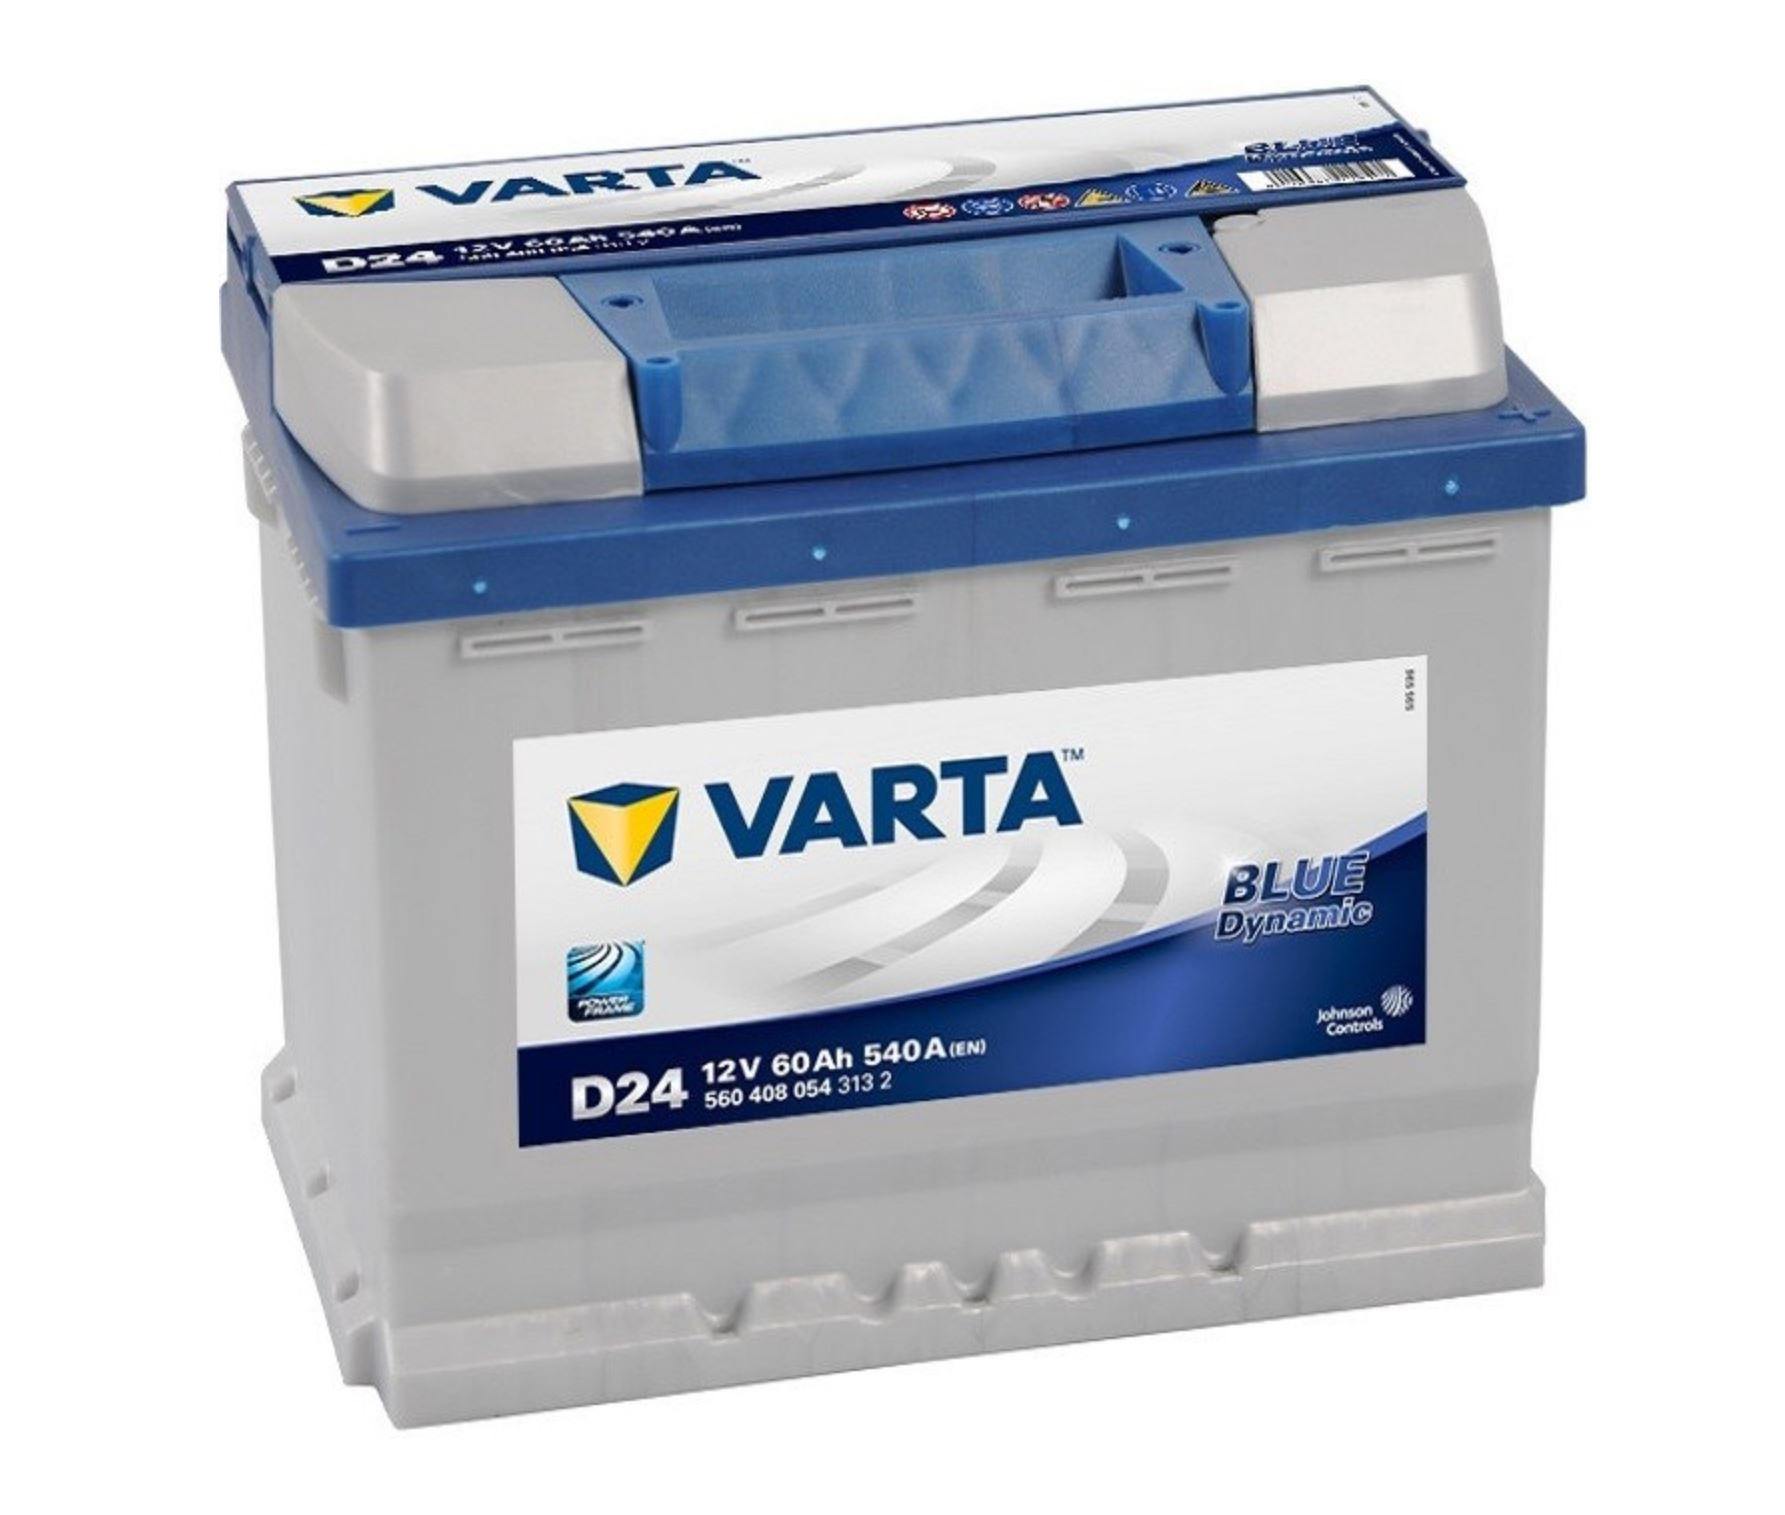 Varta Blue Dynamic 12V 60Ah 540A 560 408 054